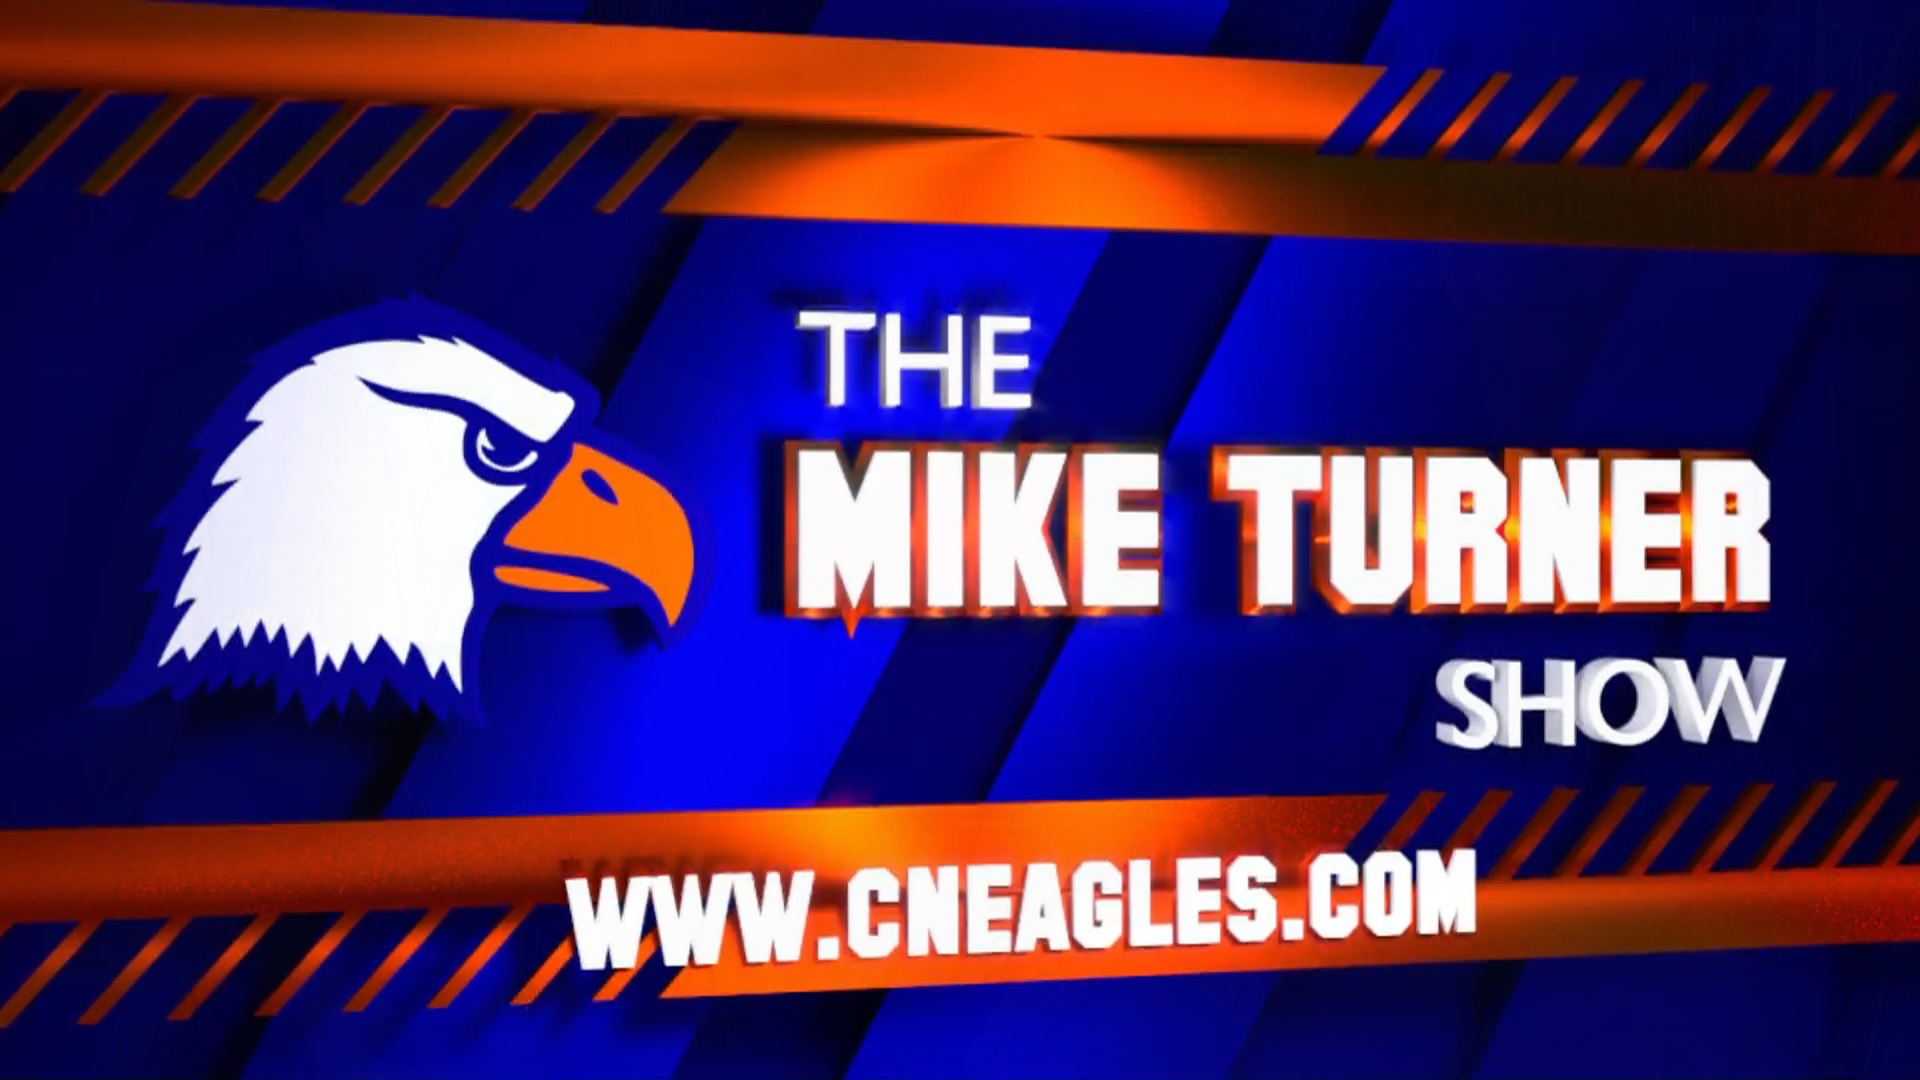 Week two of the Mike Turner Show available online